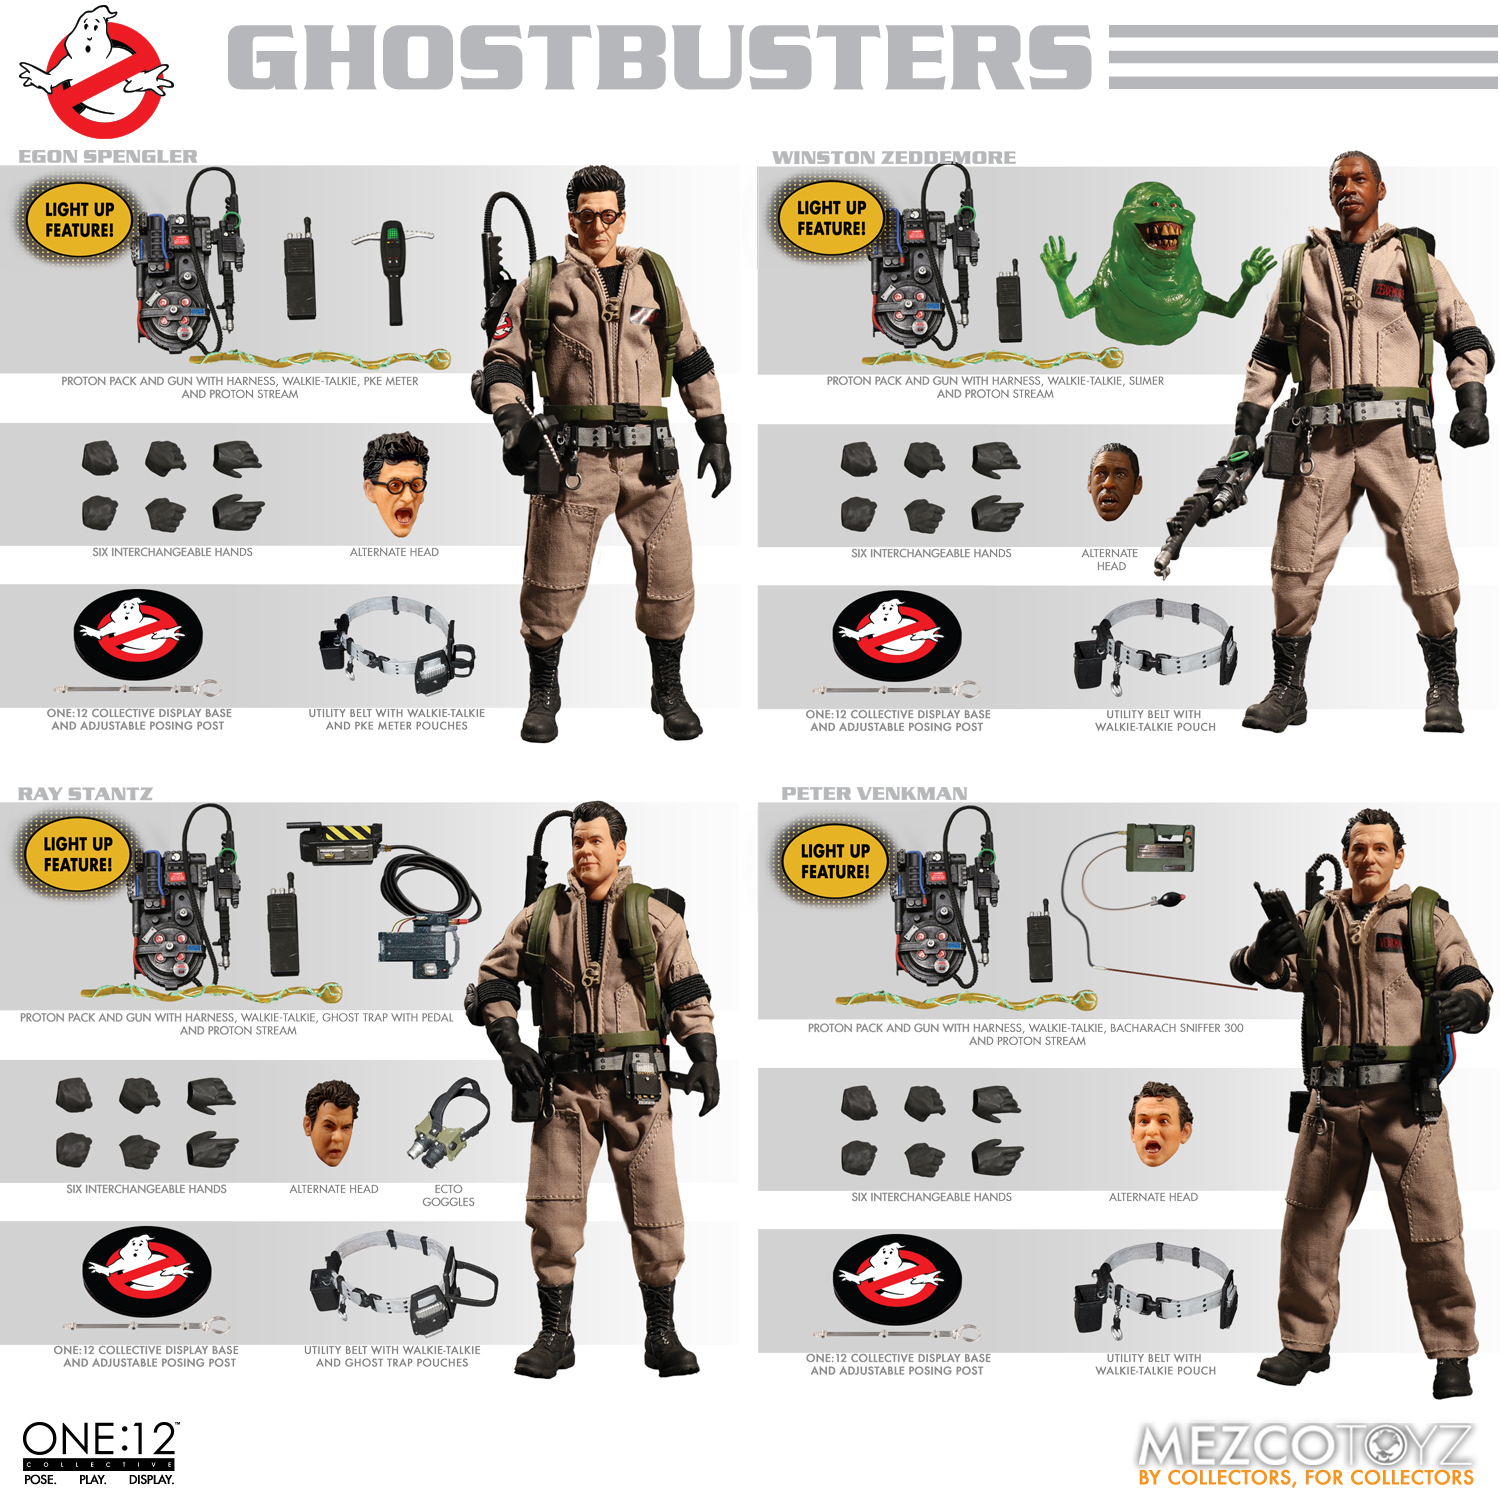 ONE-12 COLLECTIVE GHOSTBUSTERS DELUXE 4PC AF BOX SET  (